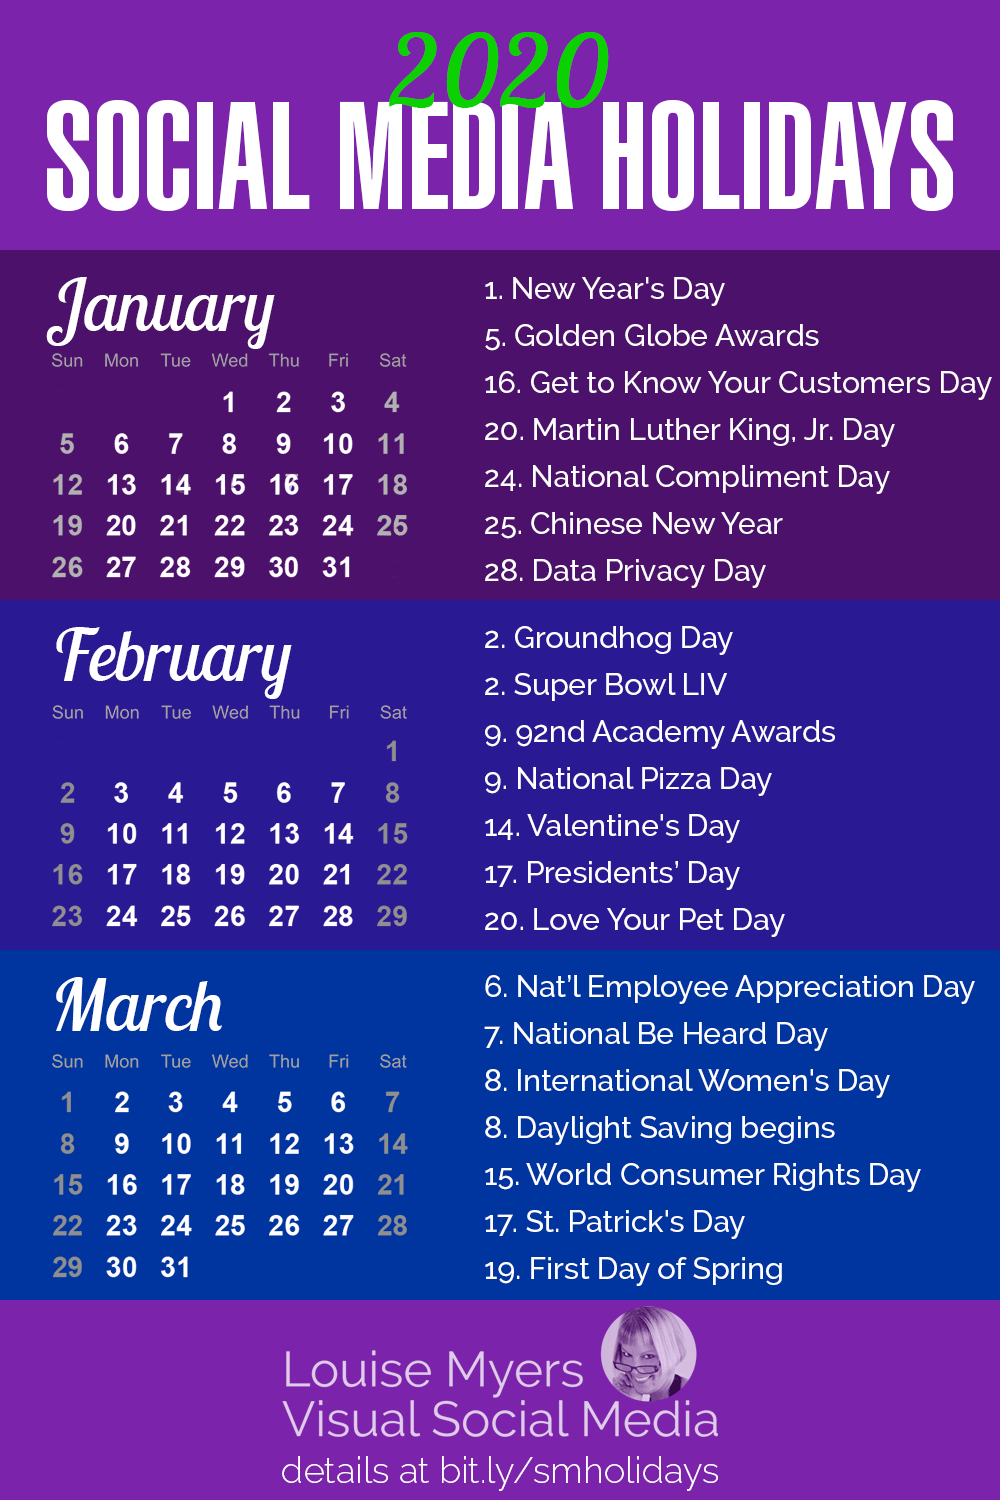 84 Social Media Holidays You Need In 2020: Indispensable! pertaining to The Ultimate Social Media Holiday Calendar For 2020